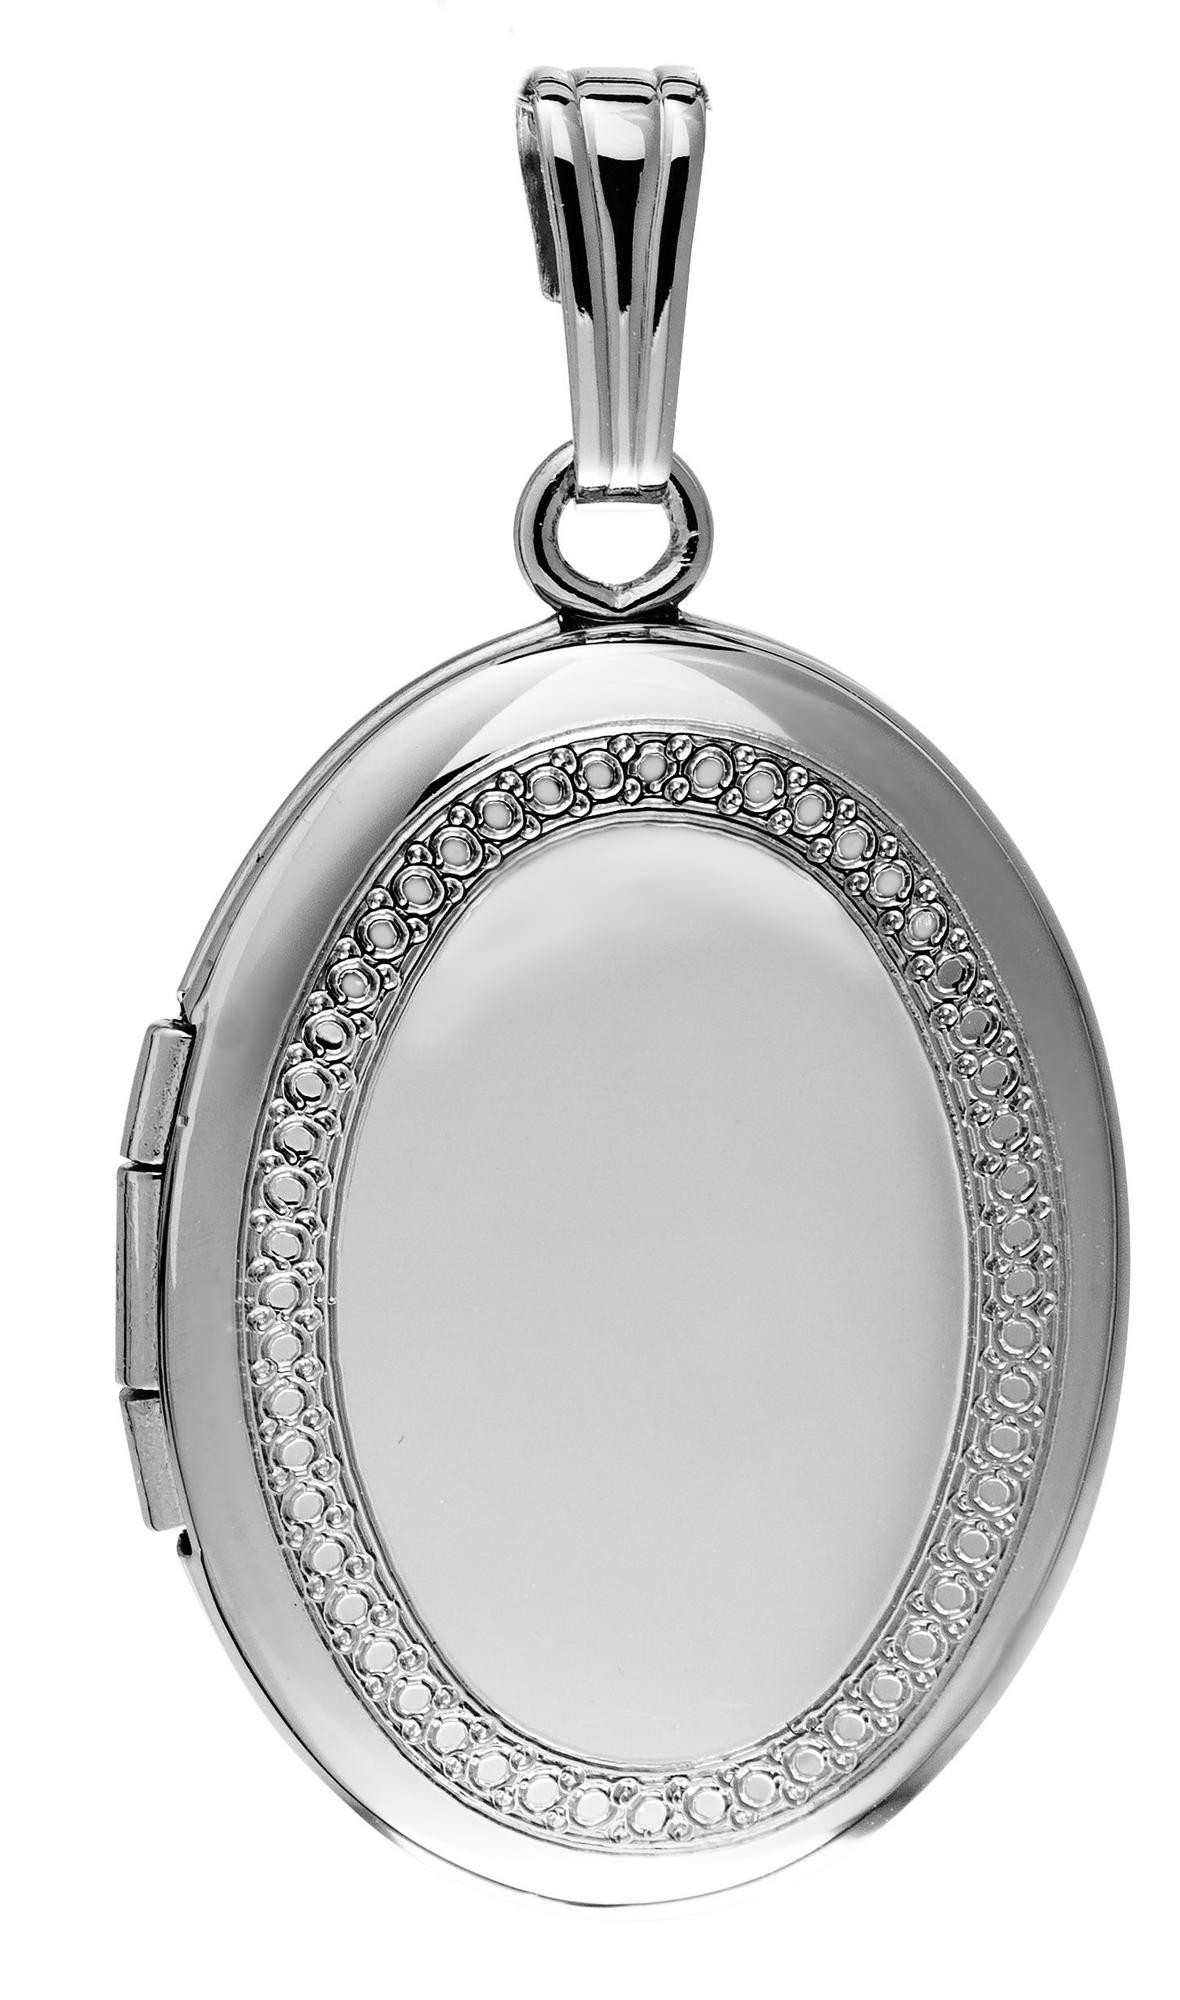 engraved cachet silver floral oval birks lockets item vintage sterling full locket f